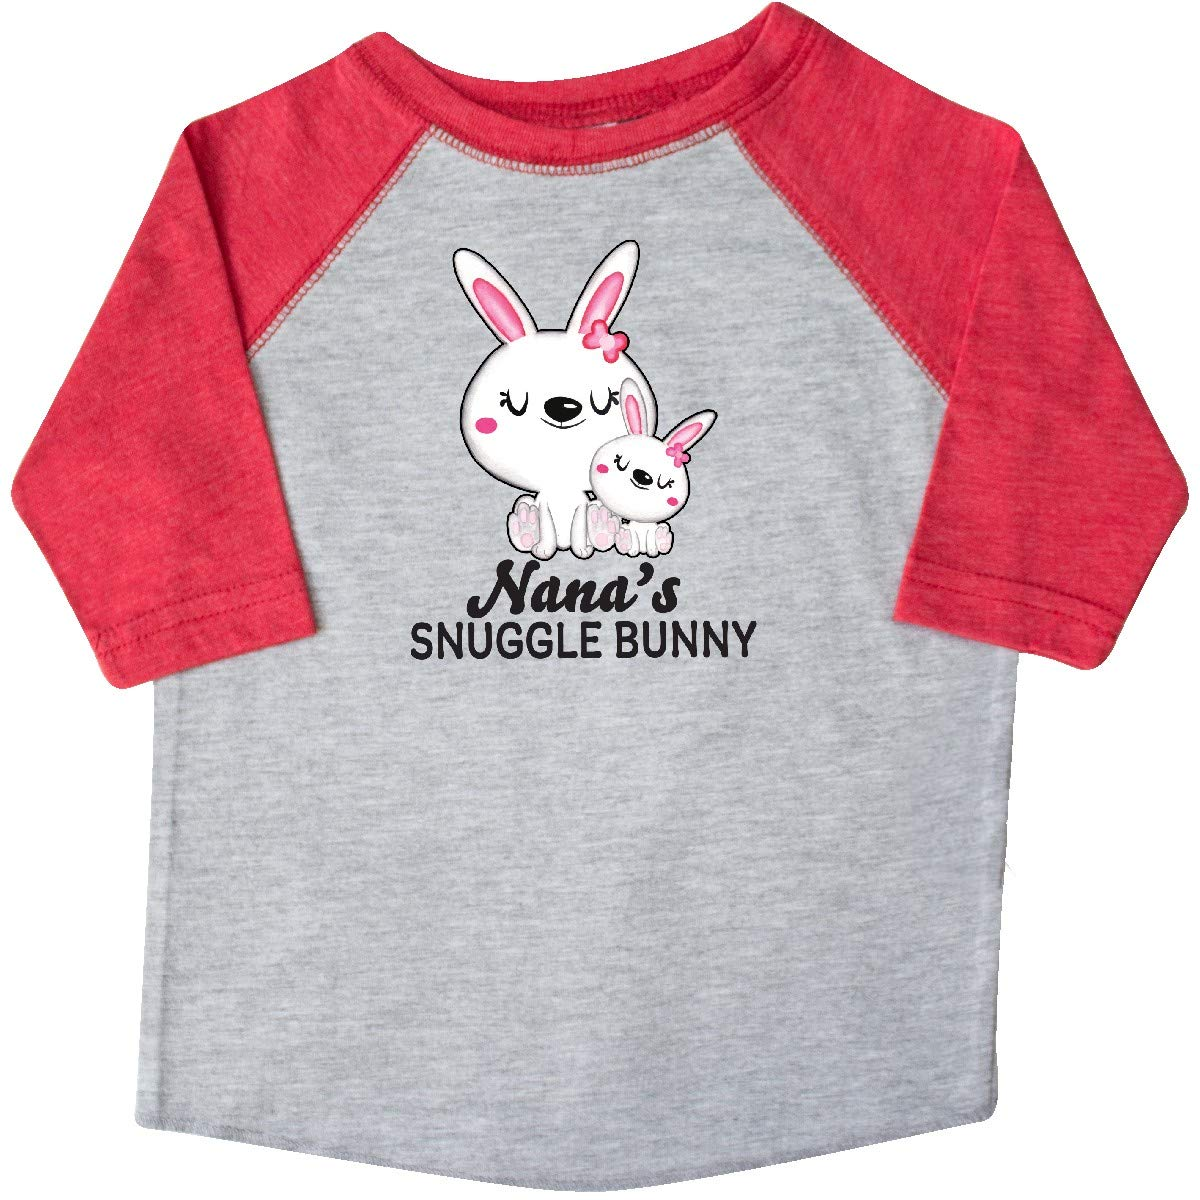 inktastic Nanas Snuggle Bunny Easter Toddler T-Shirt